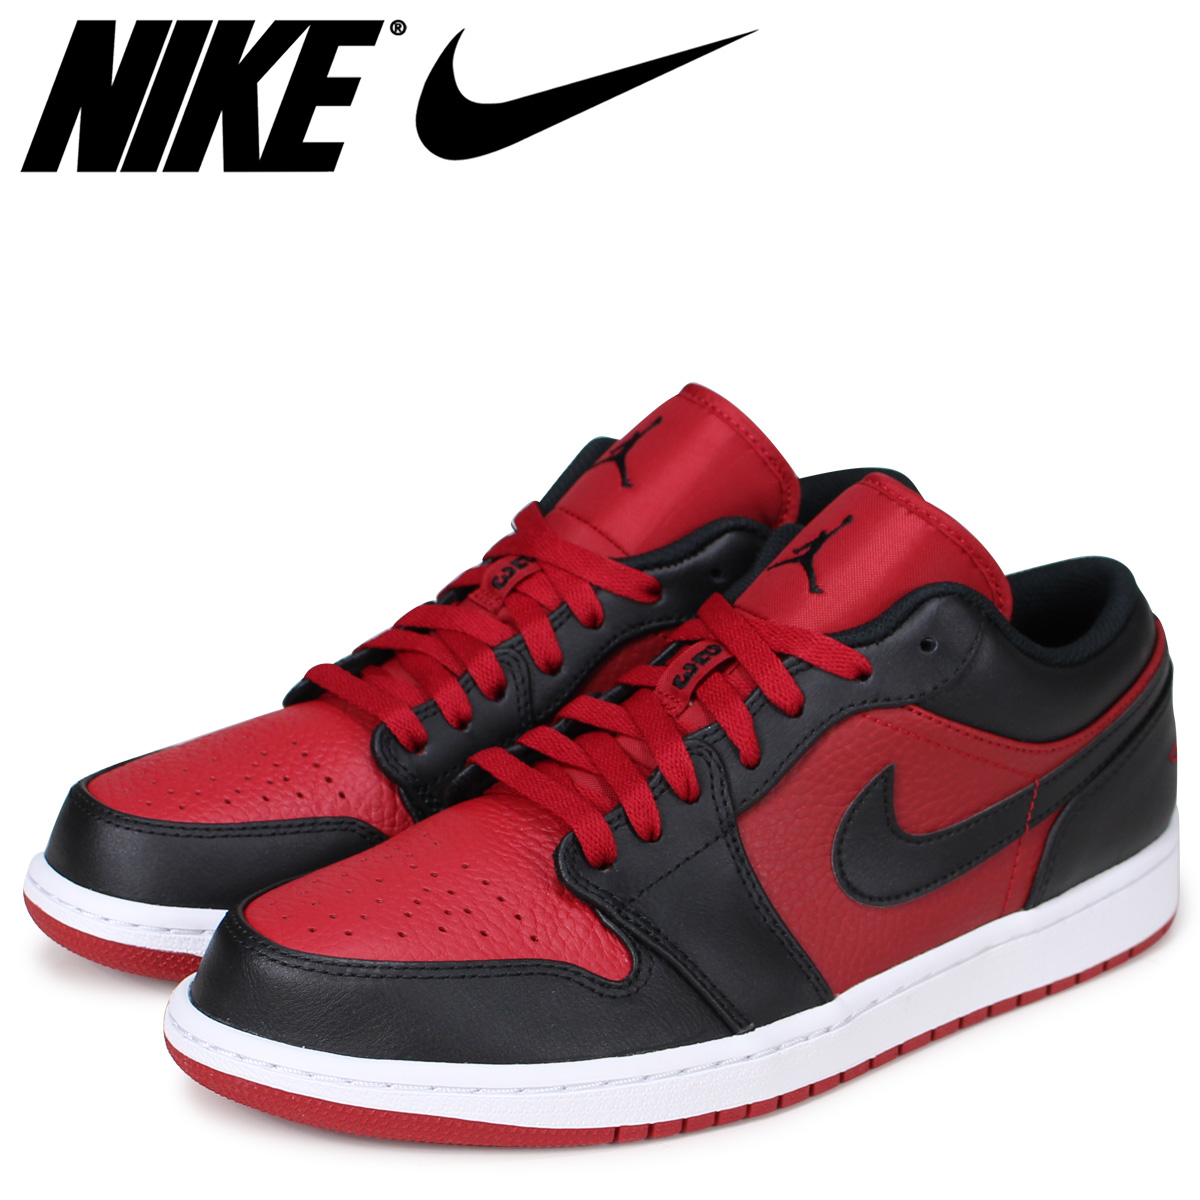 sports shoes a5a5e 2c047 NIKE Nike Air Jordan 1 sneakers men AIR JORDAN 1 LOW 553,558-610 red ...